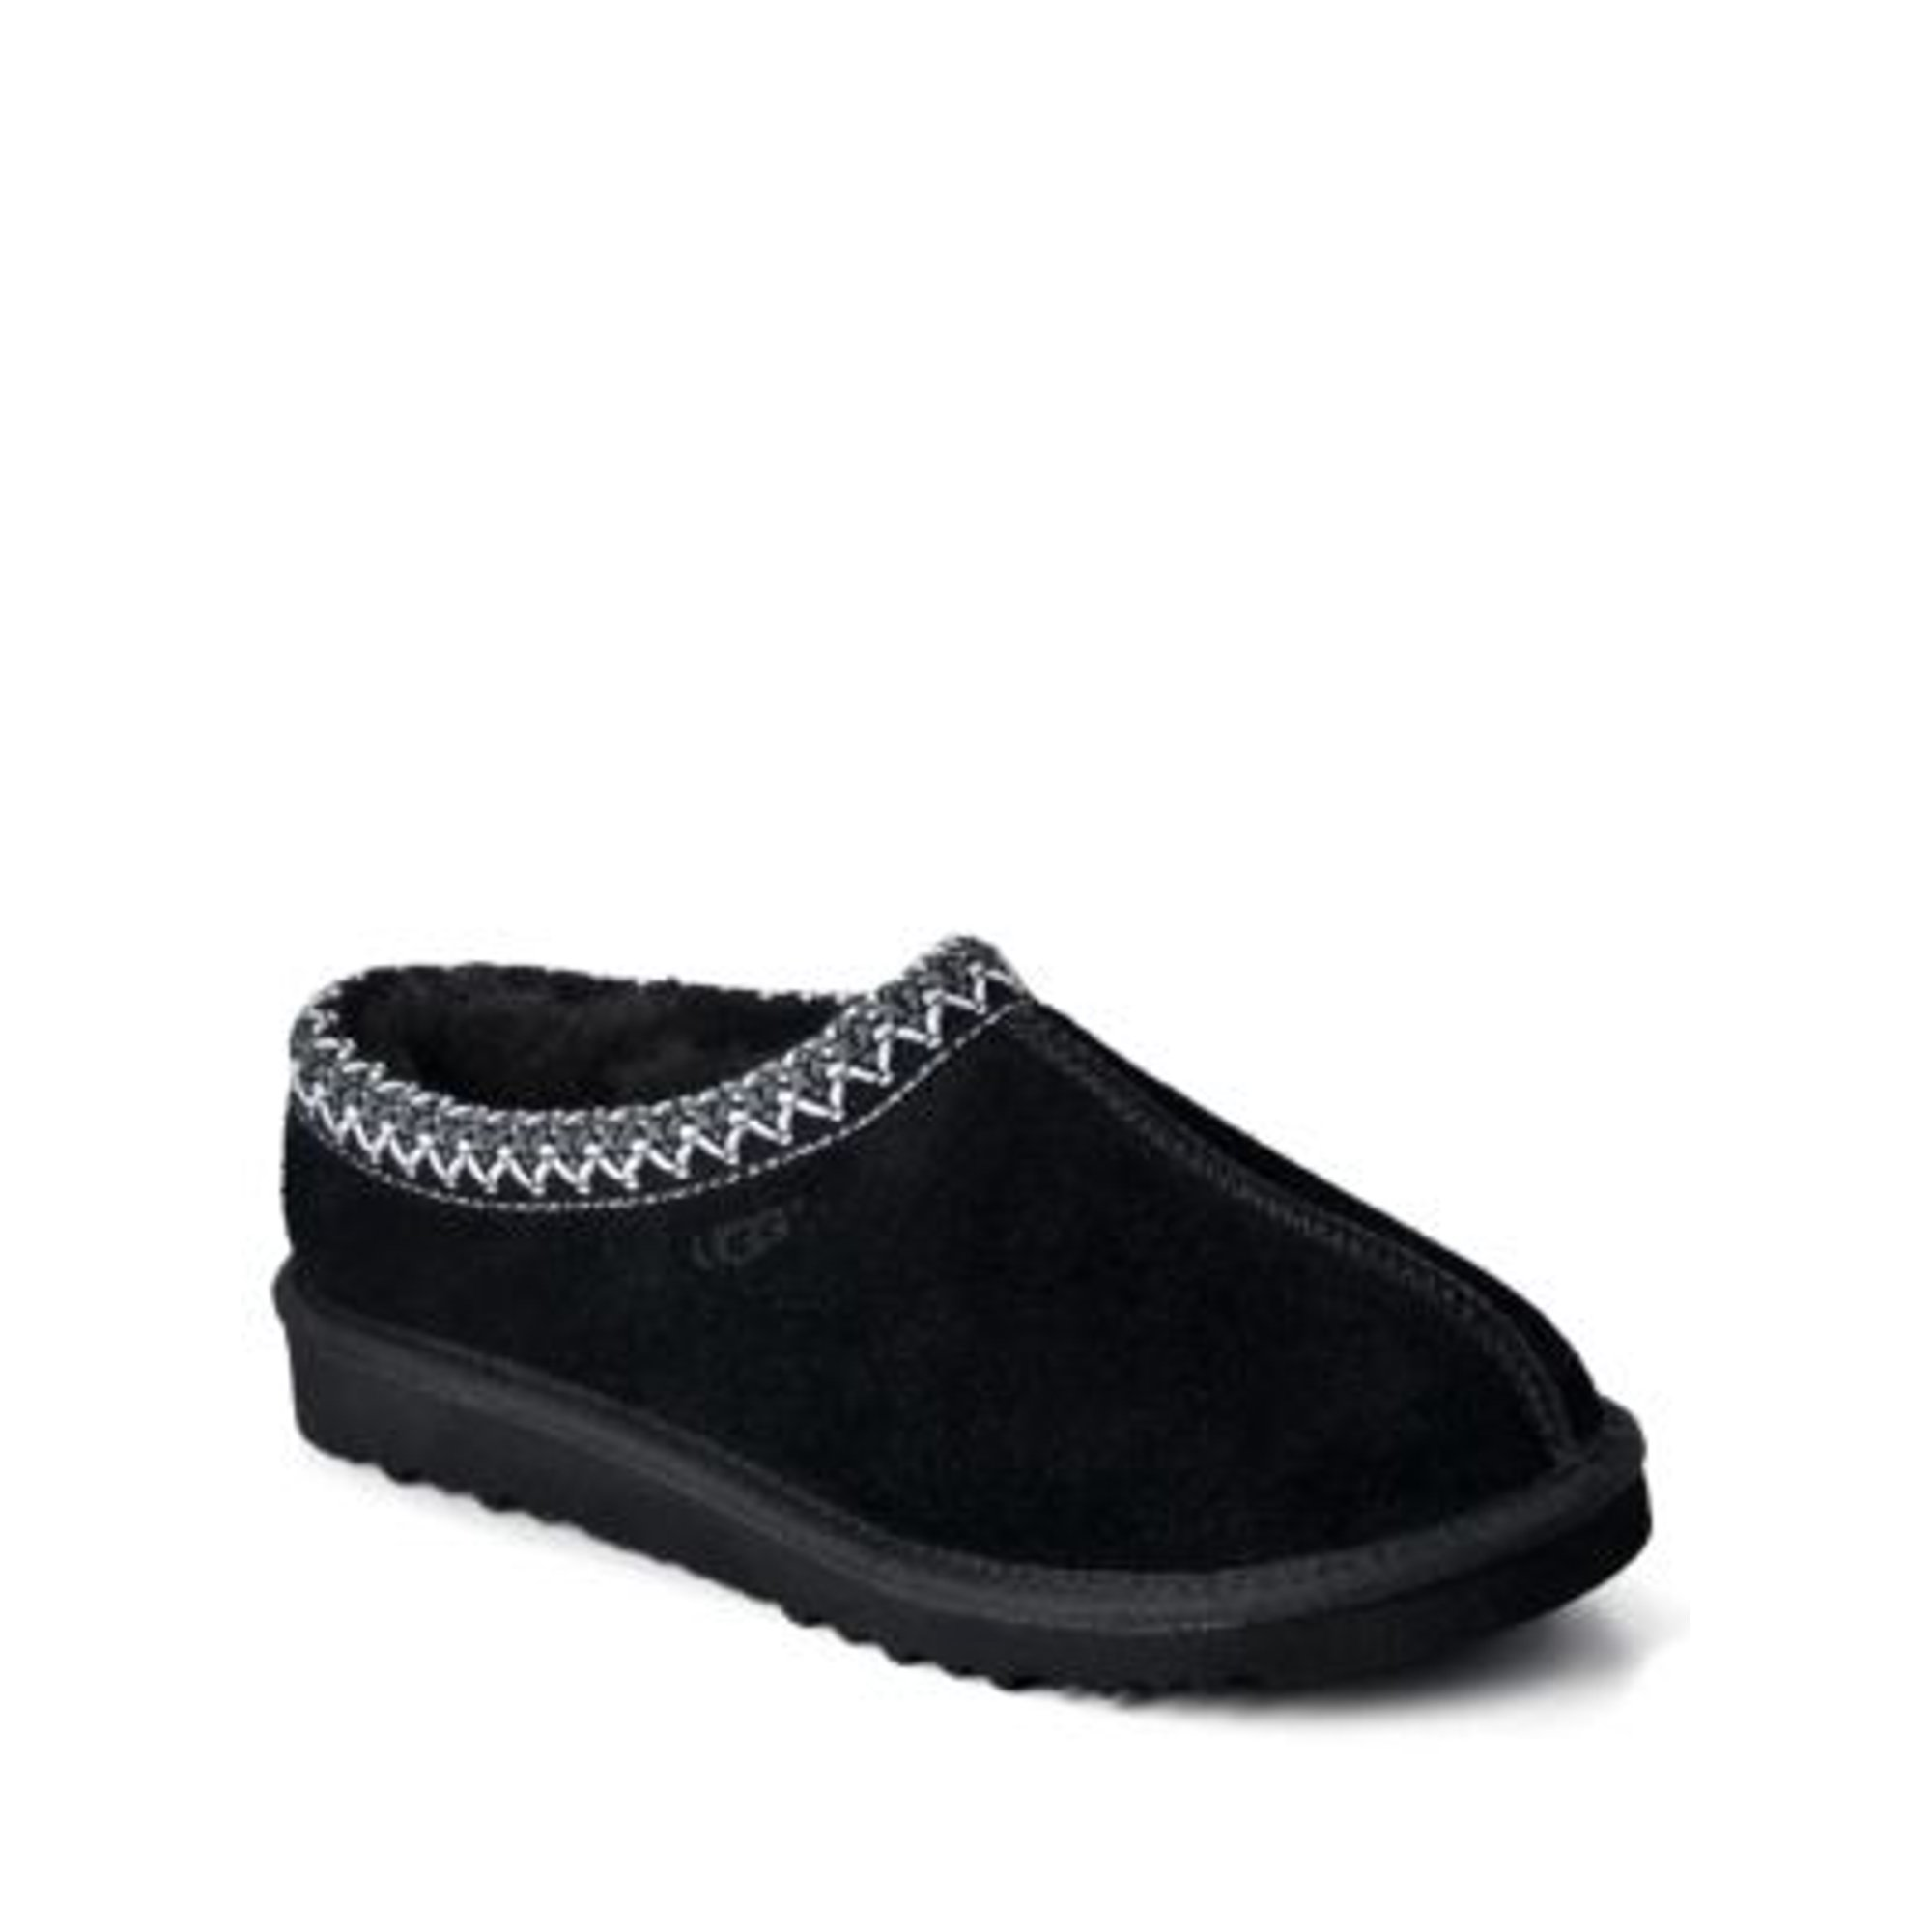 188200f6046 Buy Ladies Tasman Slippers | Cheapest UGG deals and reviews